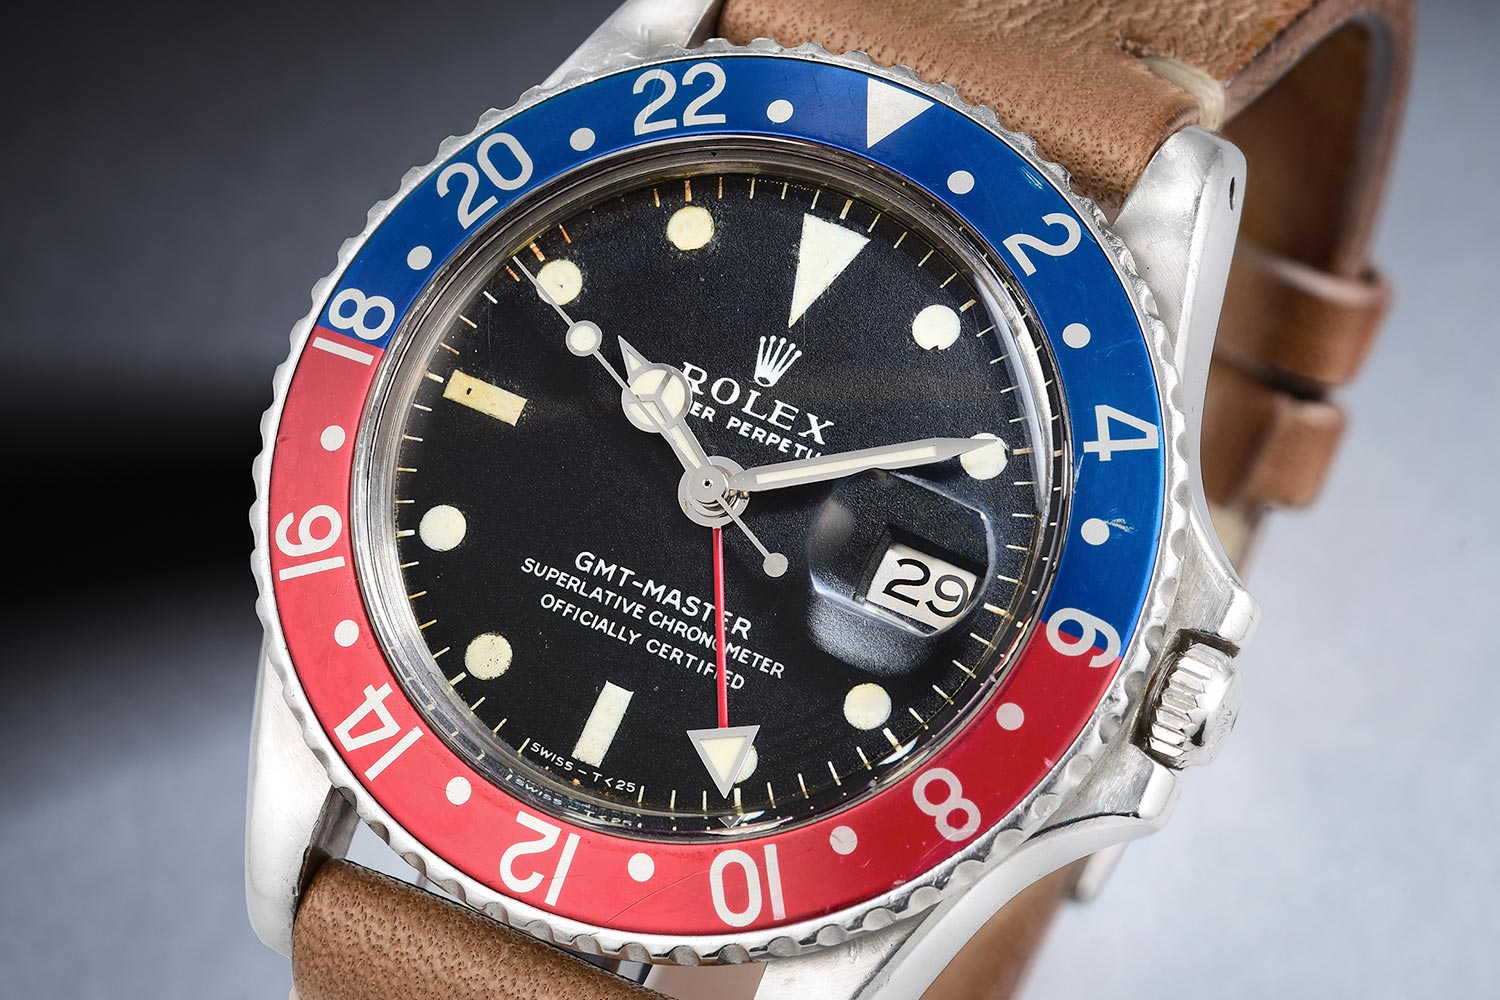 2019JUN Rolex GMT-Master 1675 Vintage Watch Auction